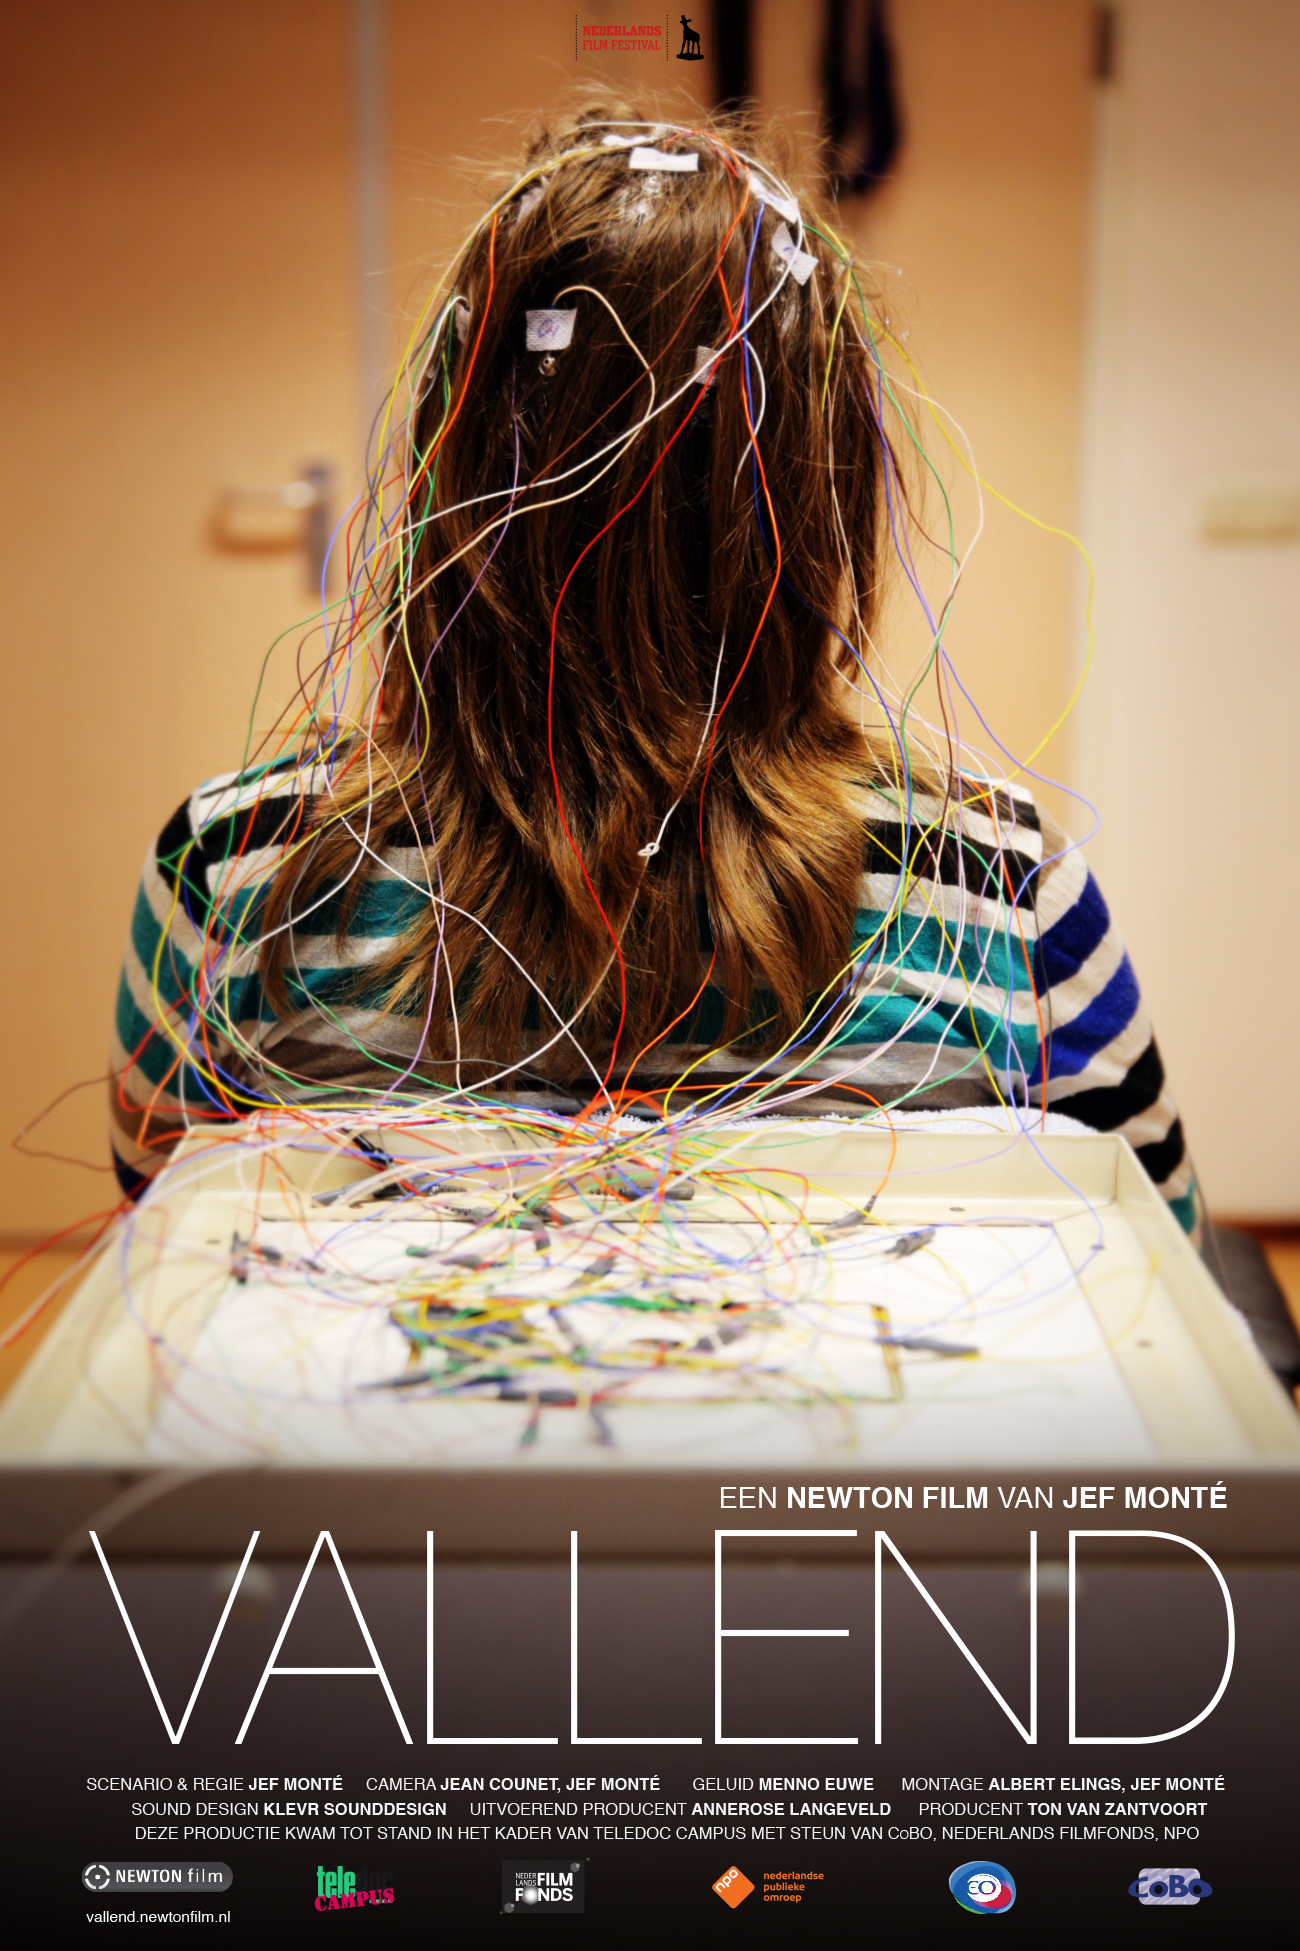 VALLEND poster Teledoc campus documentaire over epilepsie